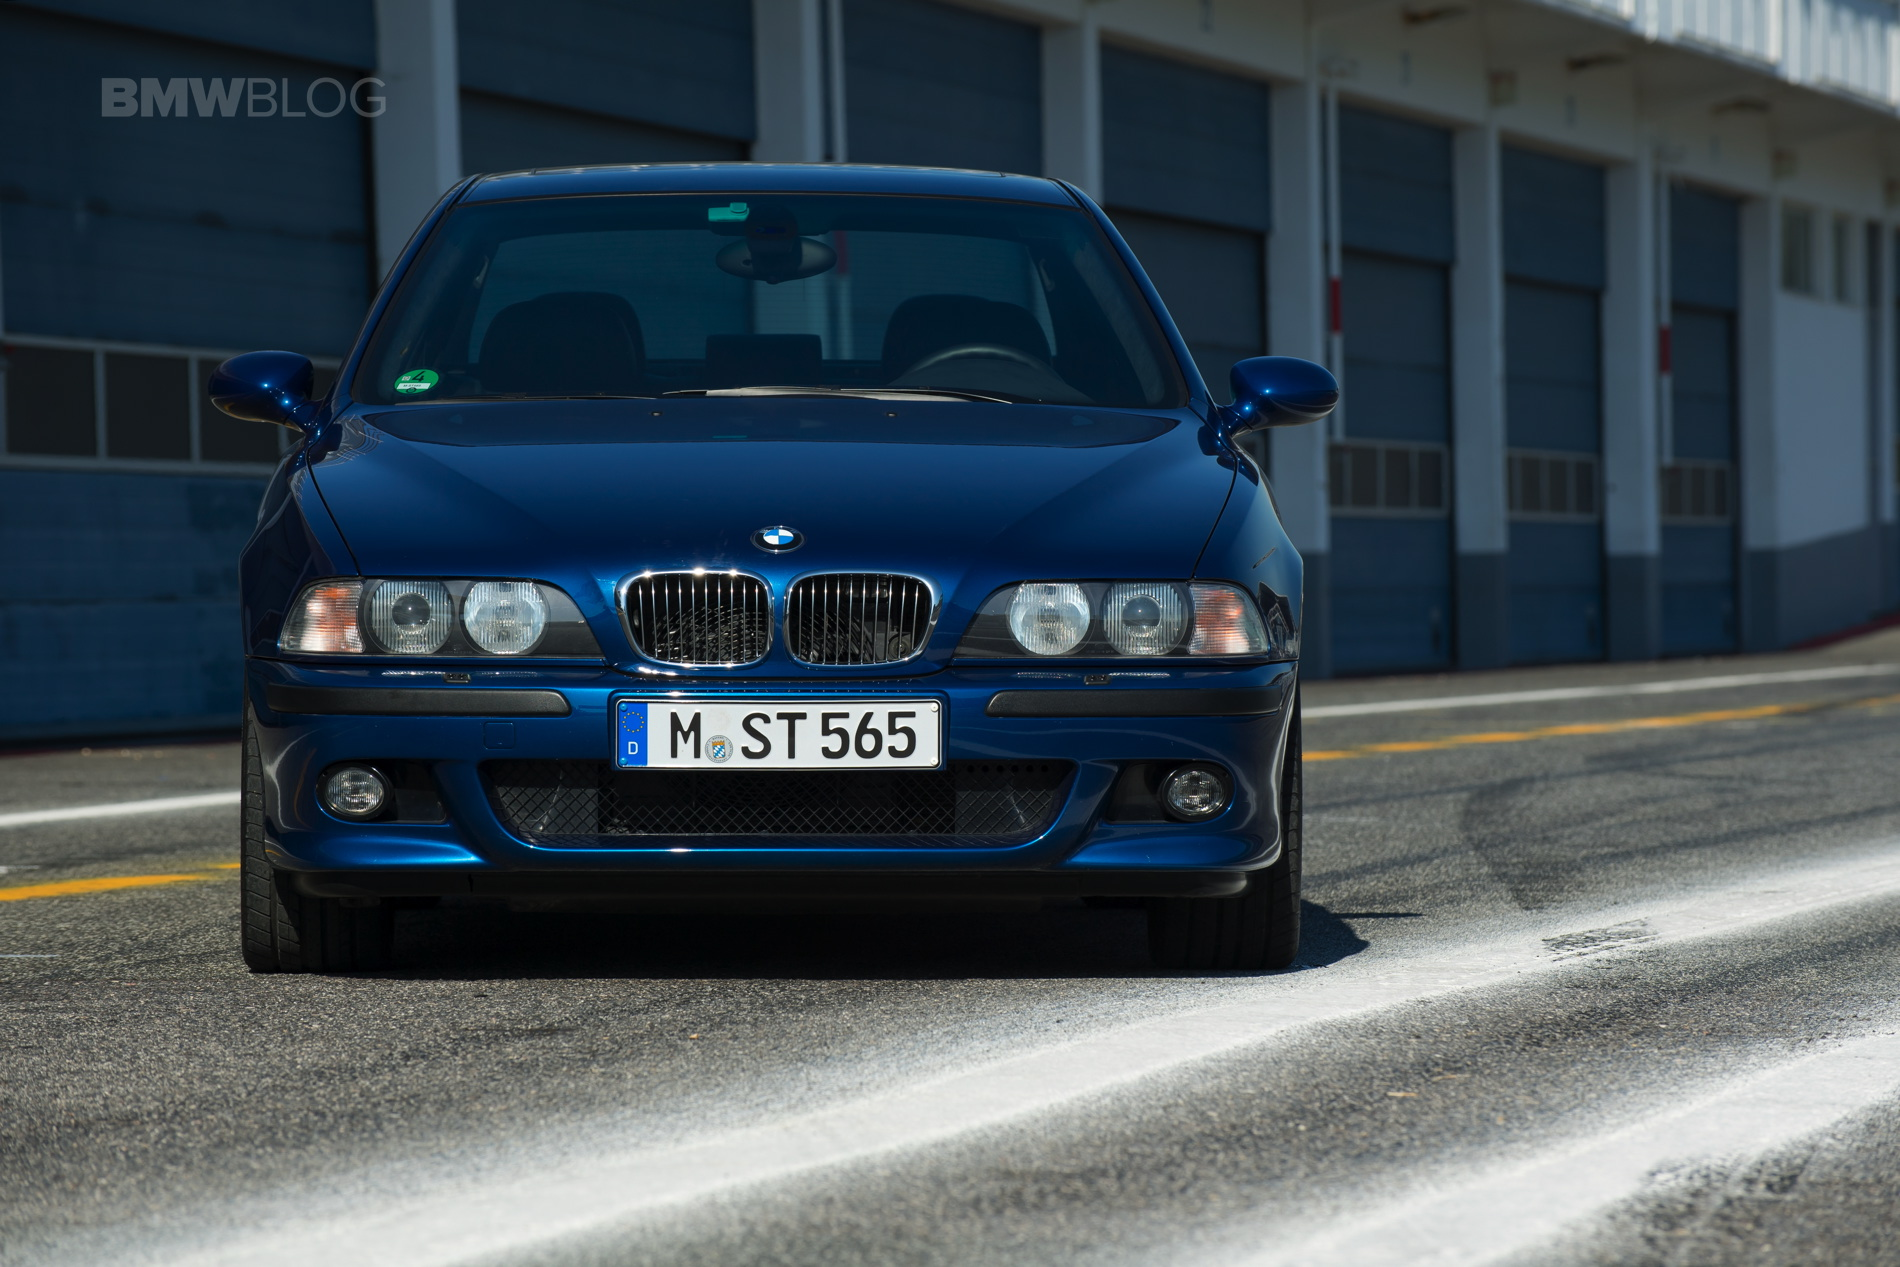 Bmw E39 M5 With 20 000 Miles On The Clock Is Asking For 59 950